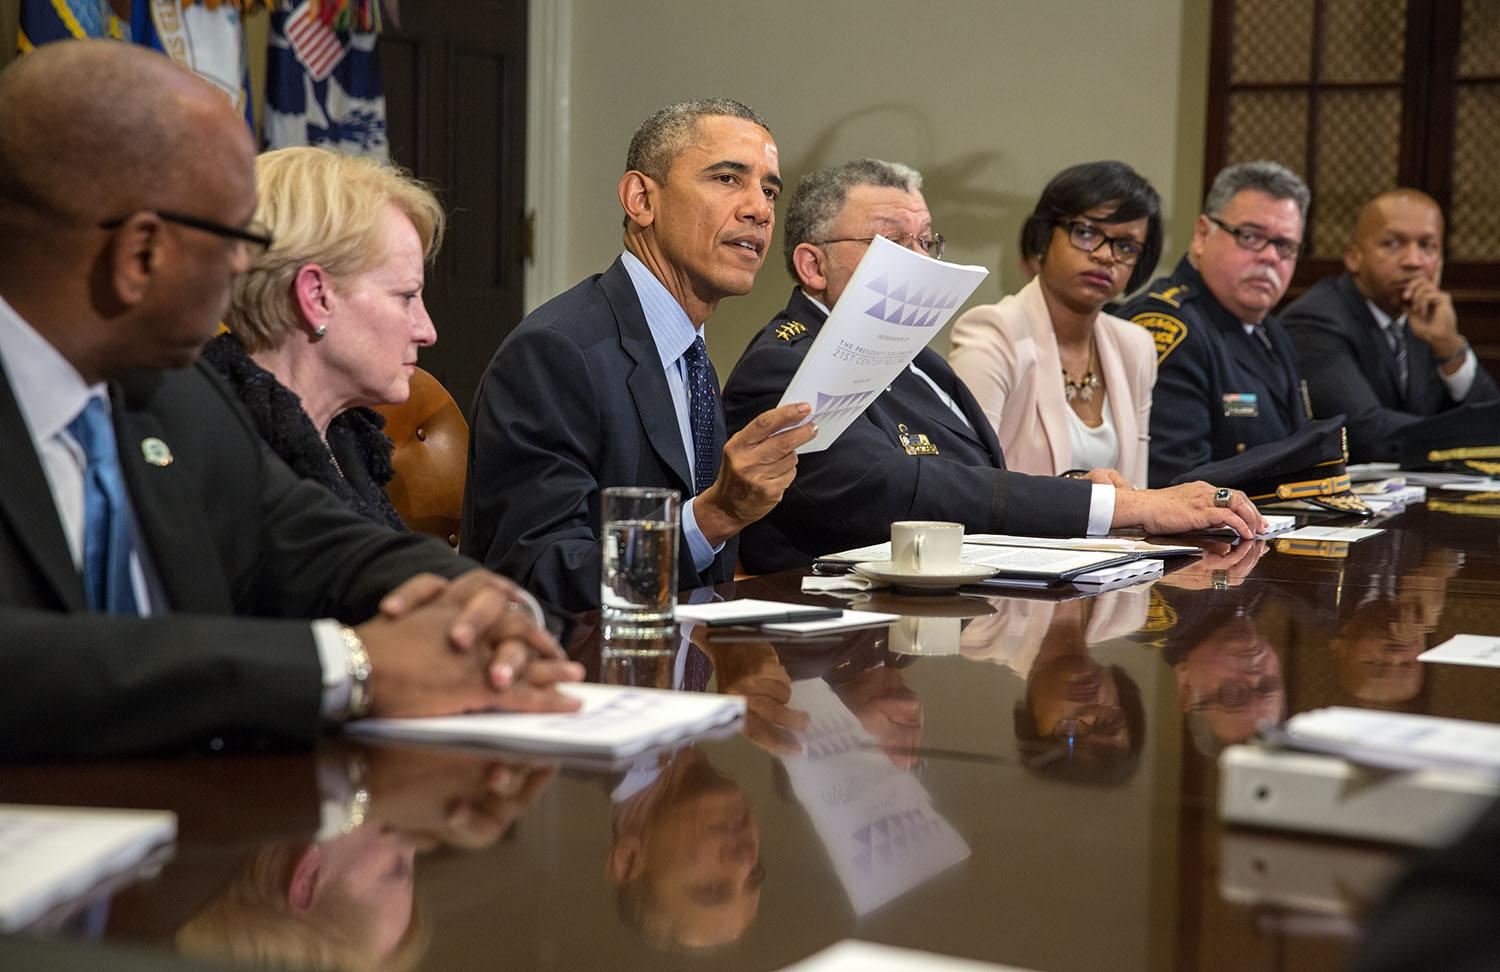 RT @WhiteHouse: Find out about new recommendations to help build trust between communities & law enforcement: http://t.co/MaXmI1SZqB http:/…